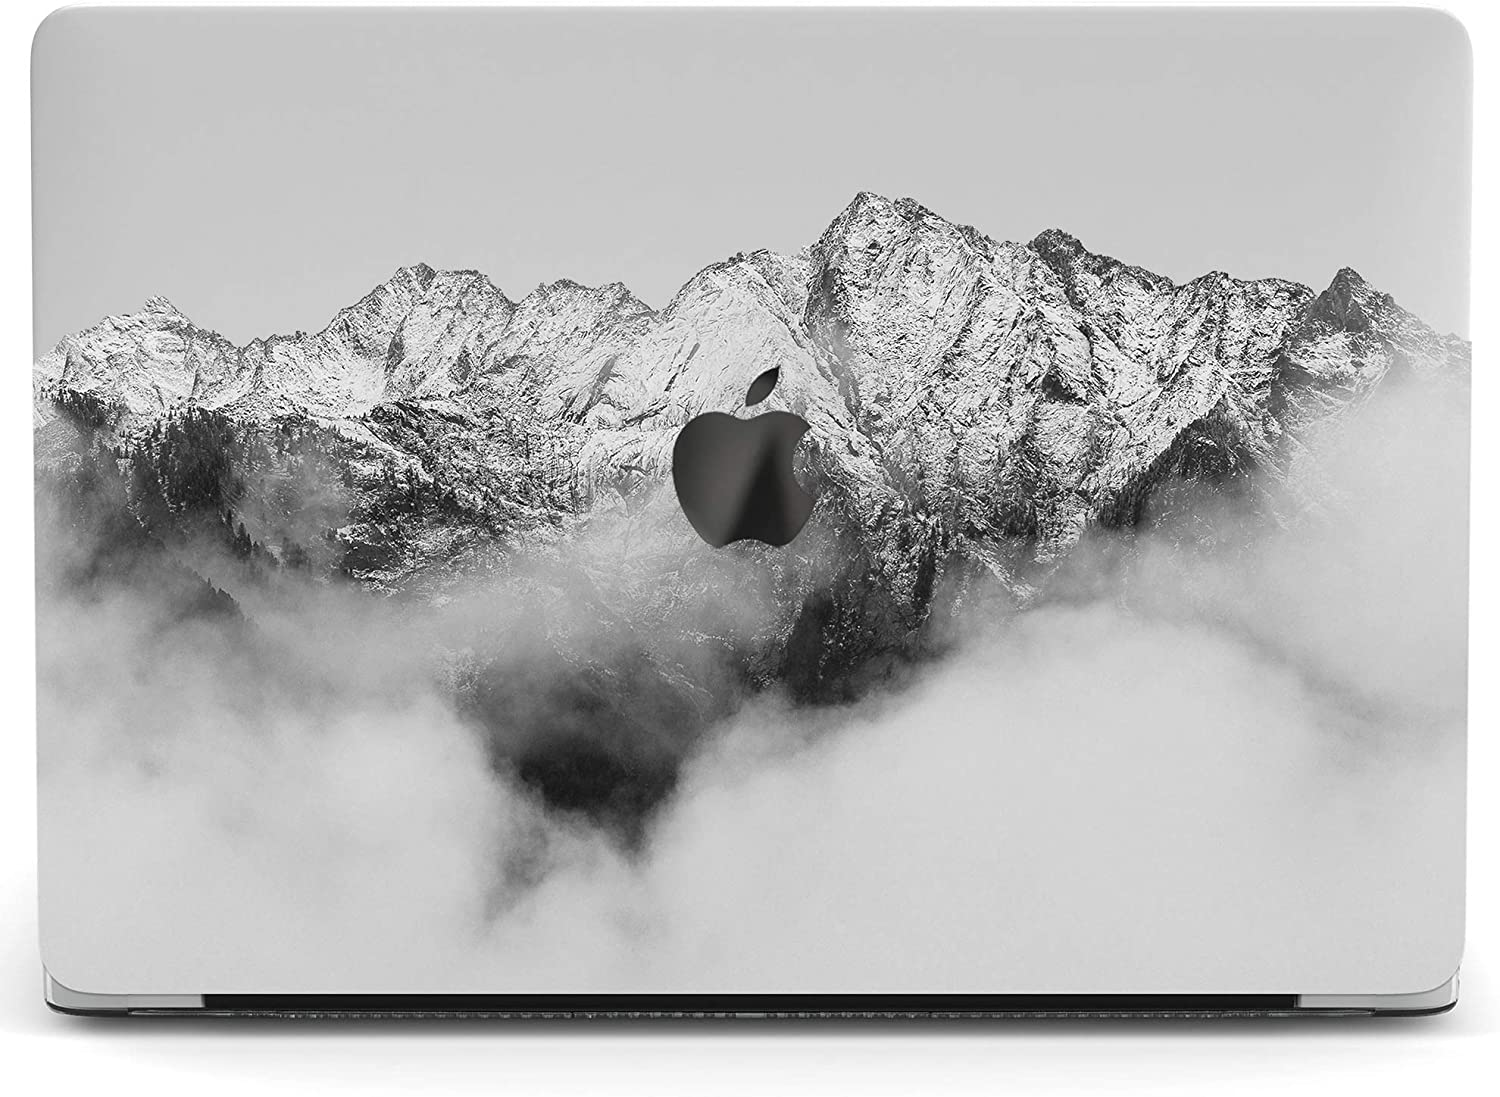 Wonder Wild Mac Retina Cover Case For MacBook Pro 15 inch 12 11 Clear Hard Air 13 Apple 2019 Protective Laptop 2018 2017 2016 2020 Plastic Print Touch Bar Nature Fog In The Mountains Snow White Clouds